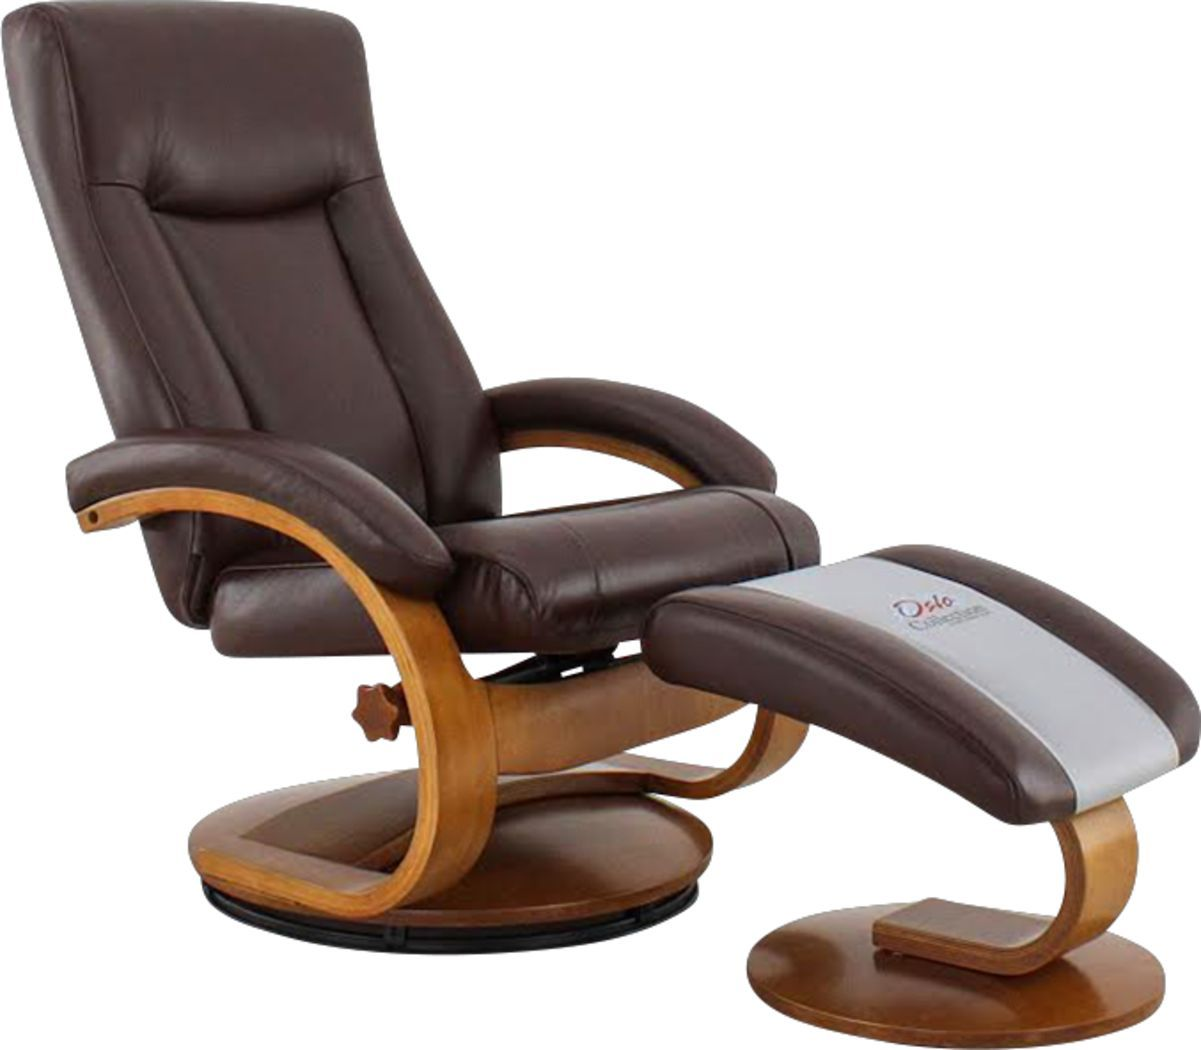 Oslo Collection Hamar Brown Recliner Ottoman Recliner With Ottoman Swivel Recliner Brown Leather Recliner